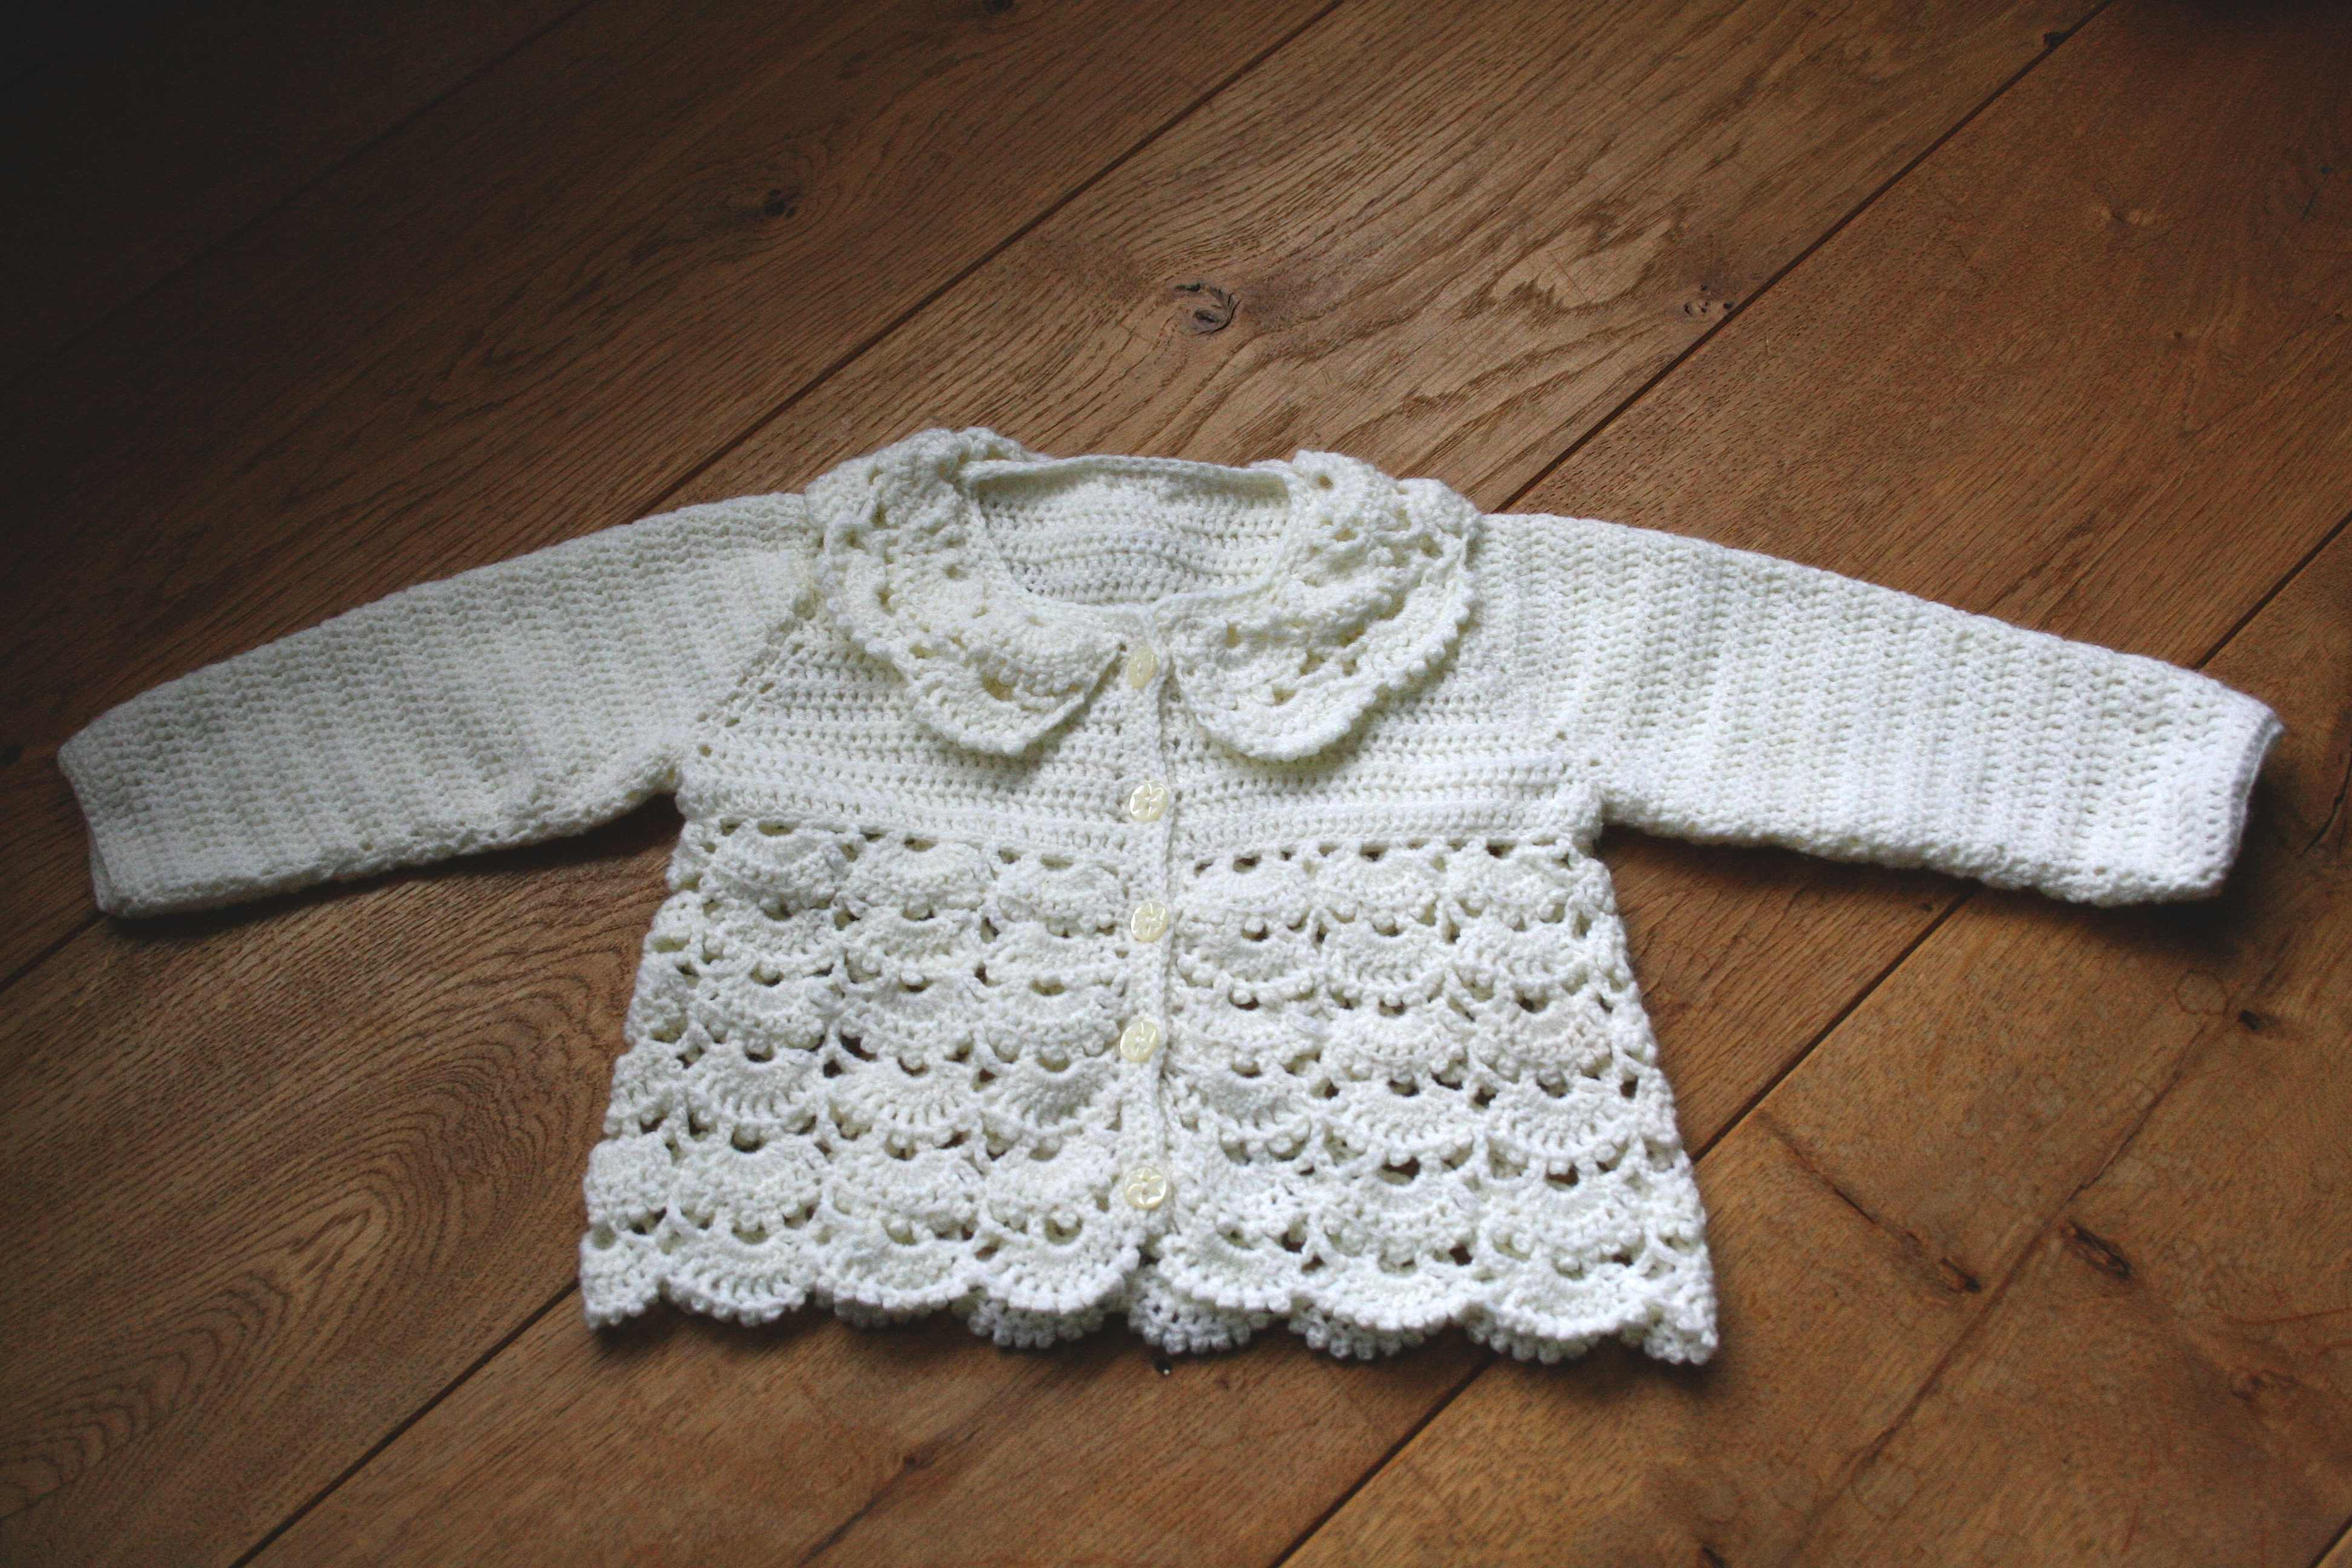 Crochet Baby Sweater Lovely Crocheted Lacy Baby Cardigan Of Charming 44 Images Crochet Baby Sweater